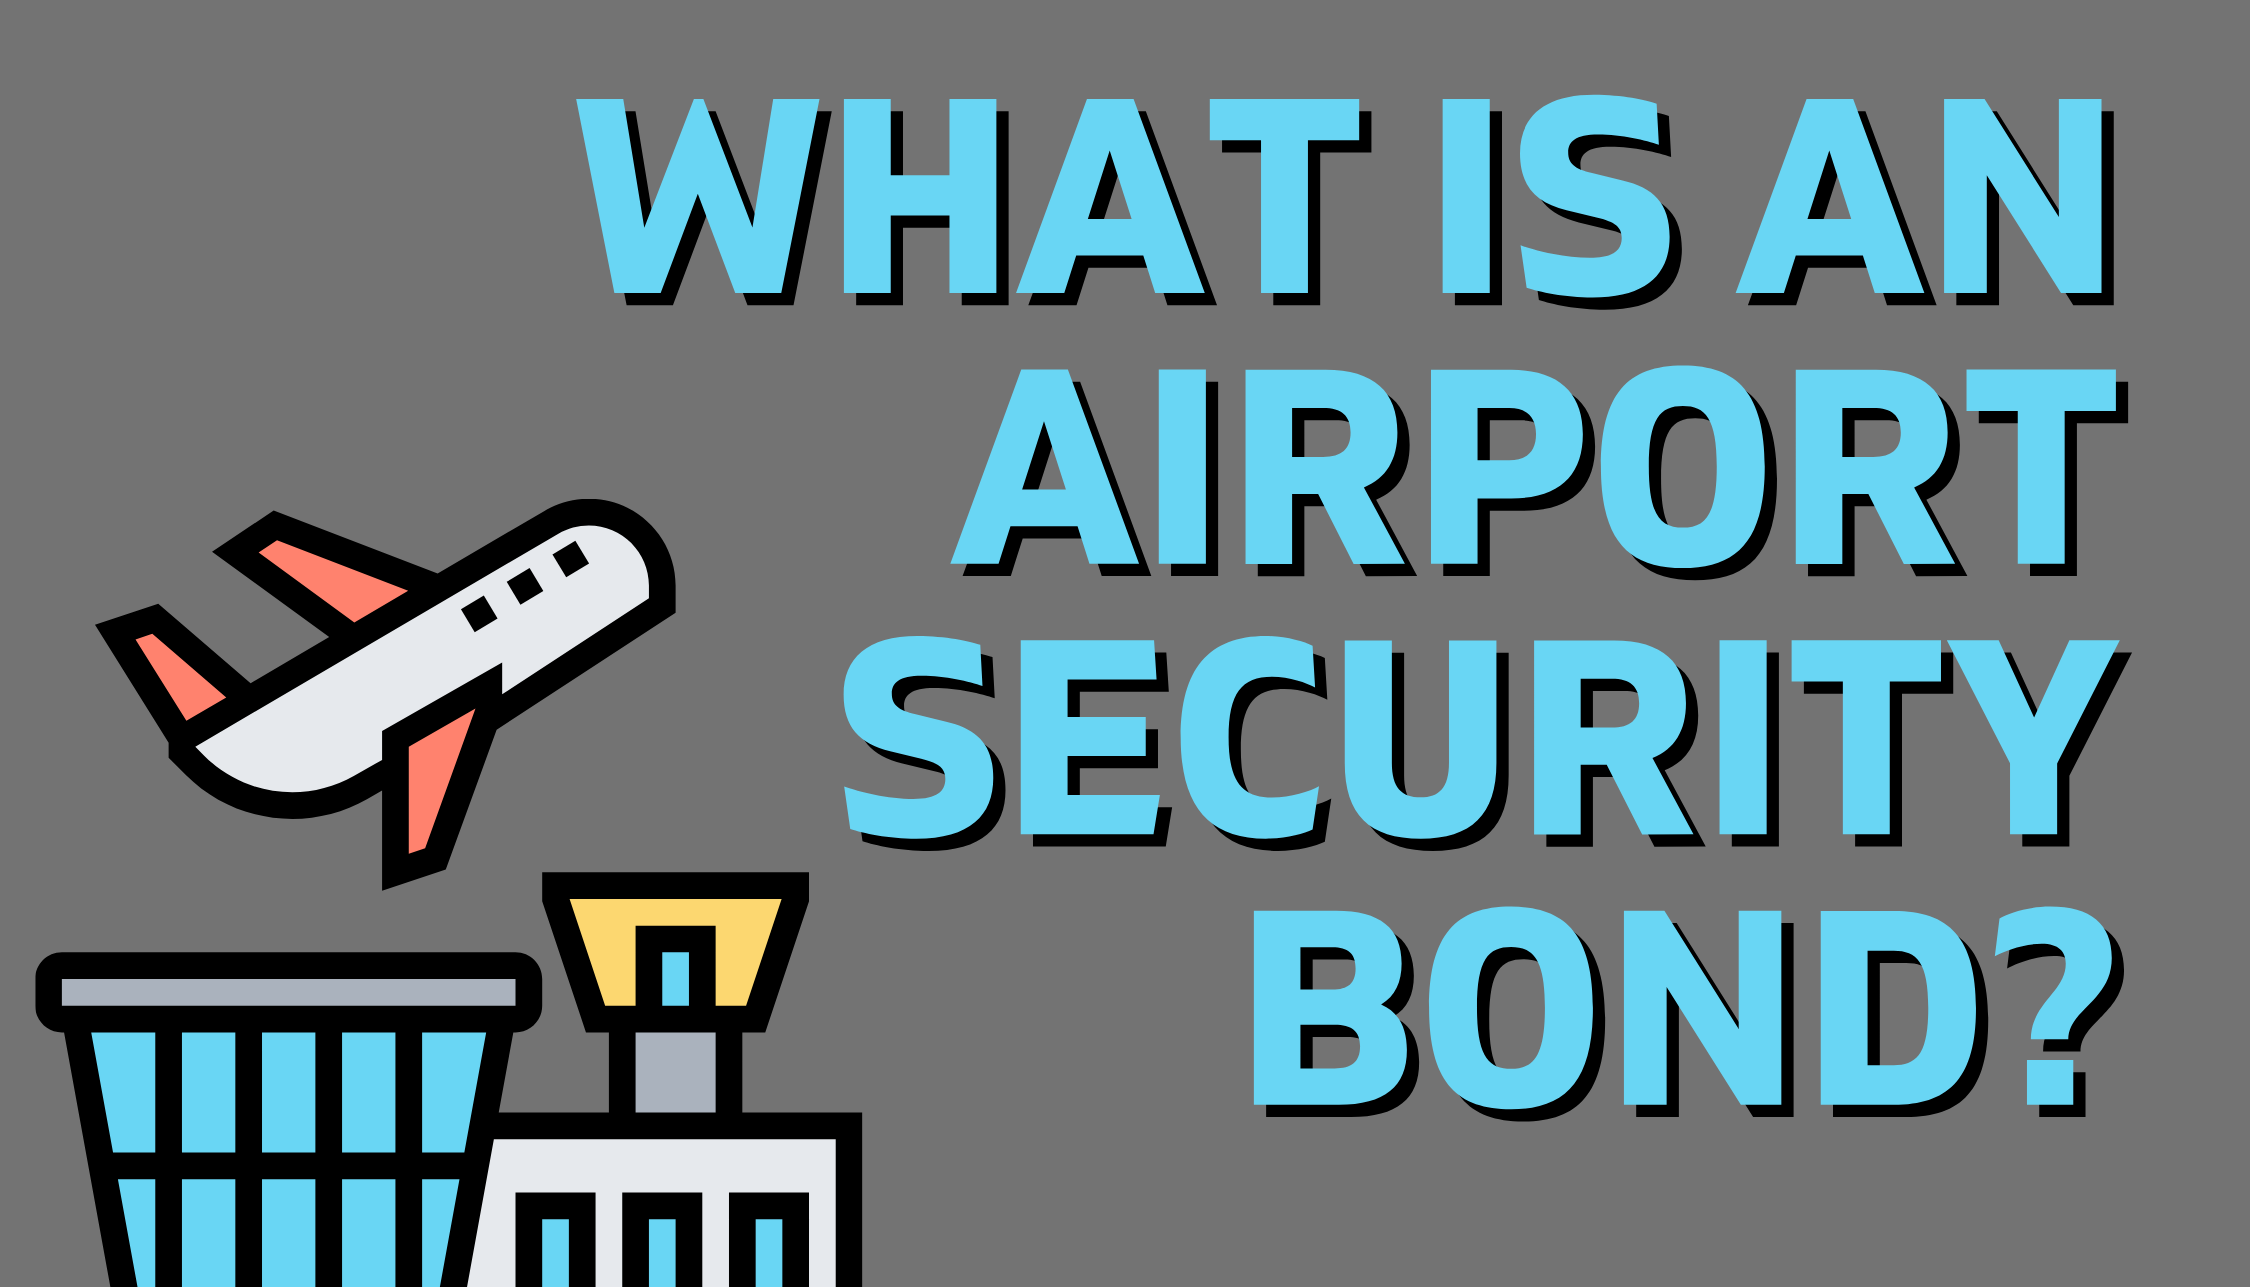 What is an Airport Security Bond?